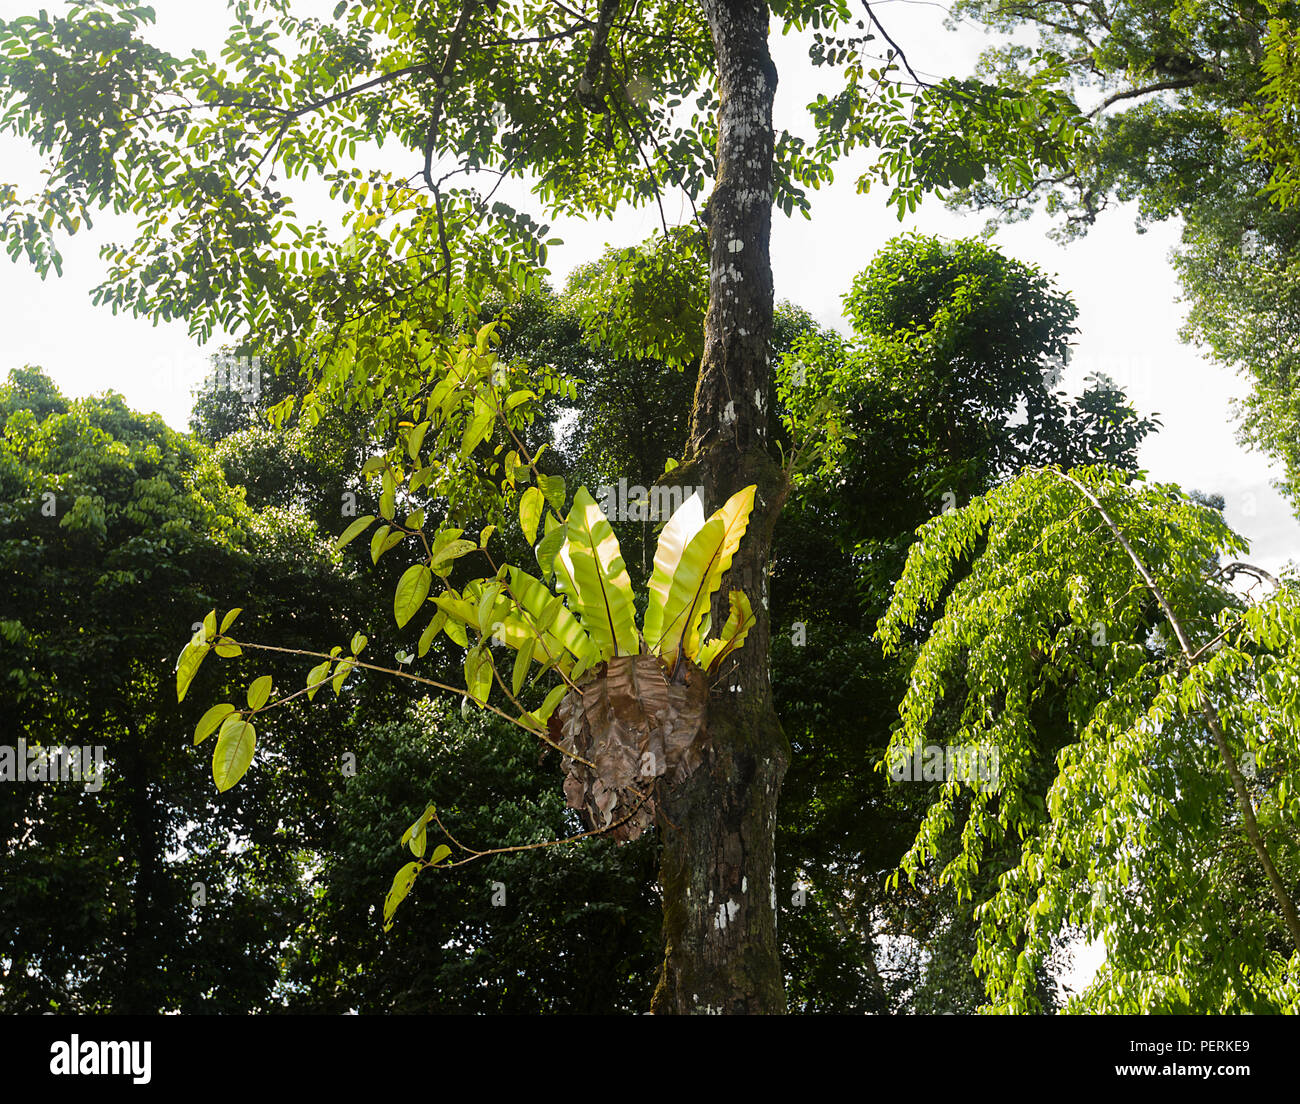 Epiphytes growing along a tree trunk in primary rainforest, Danum Valley Conservation Area, Sabah, Borneo, Malaysia - Stock Image